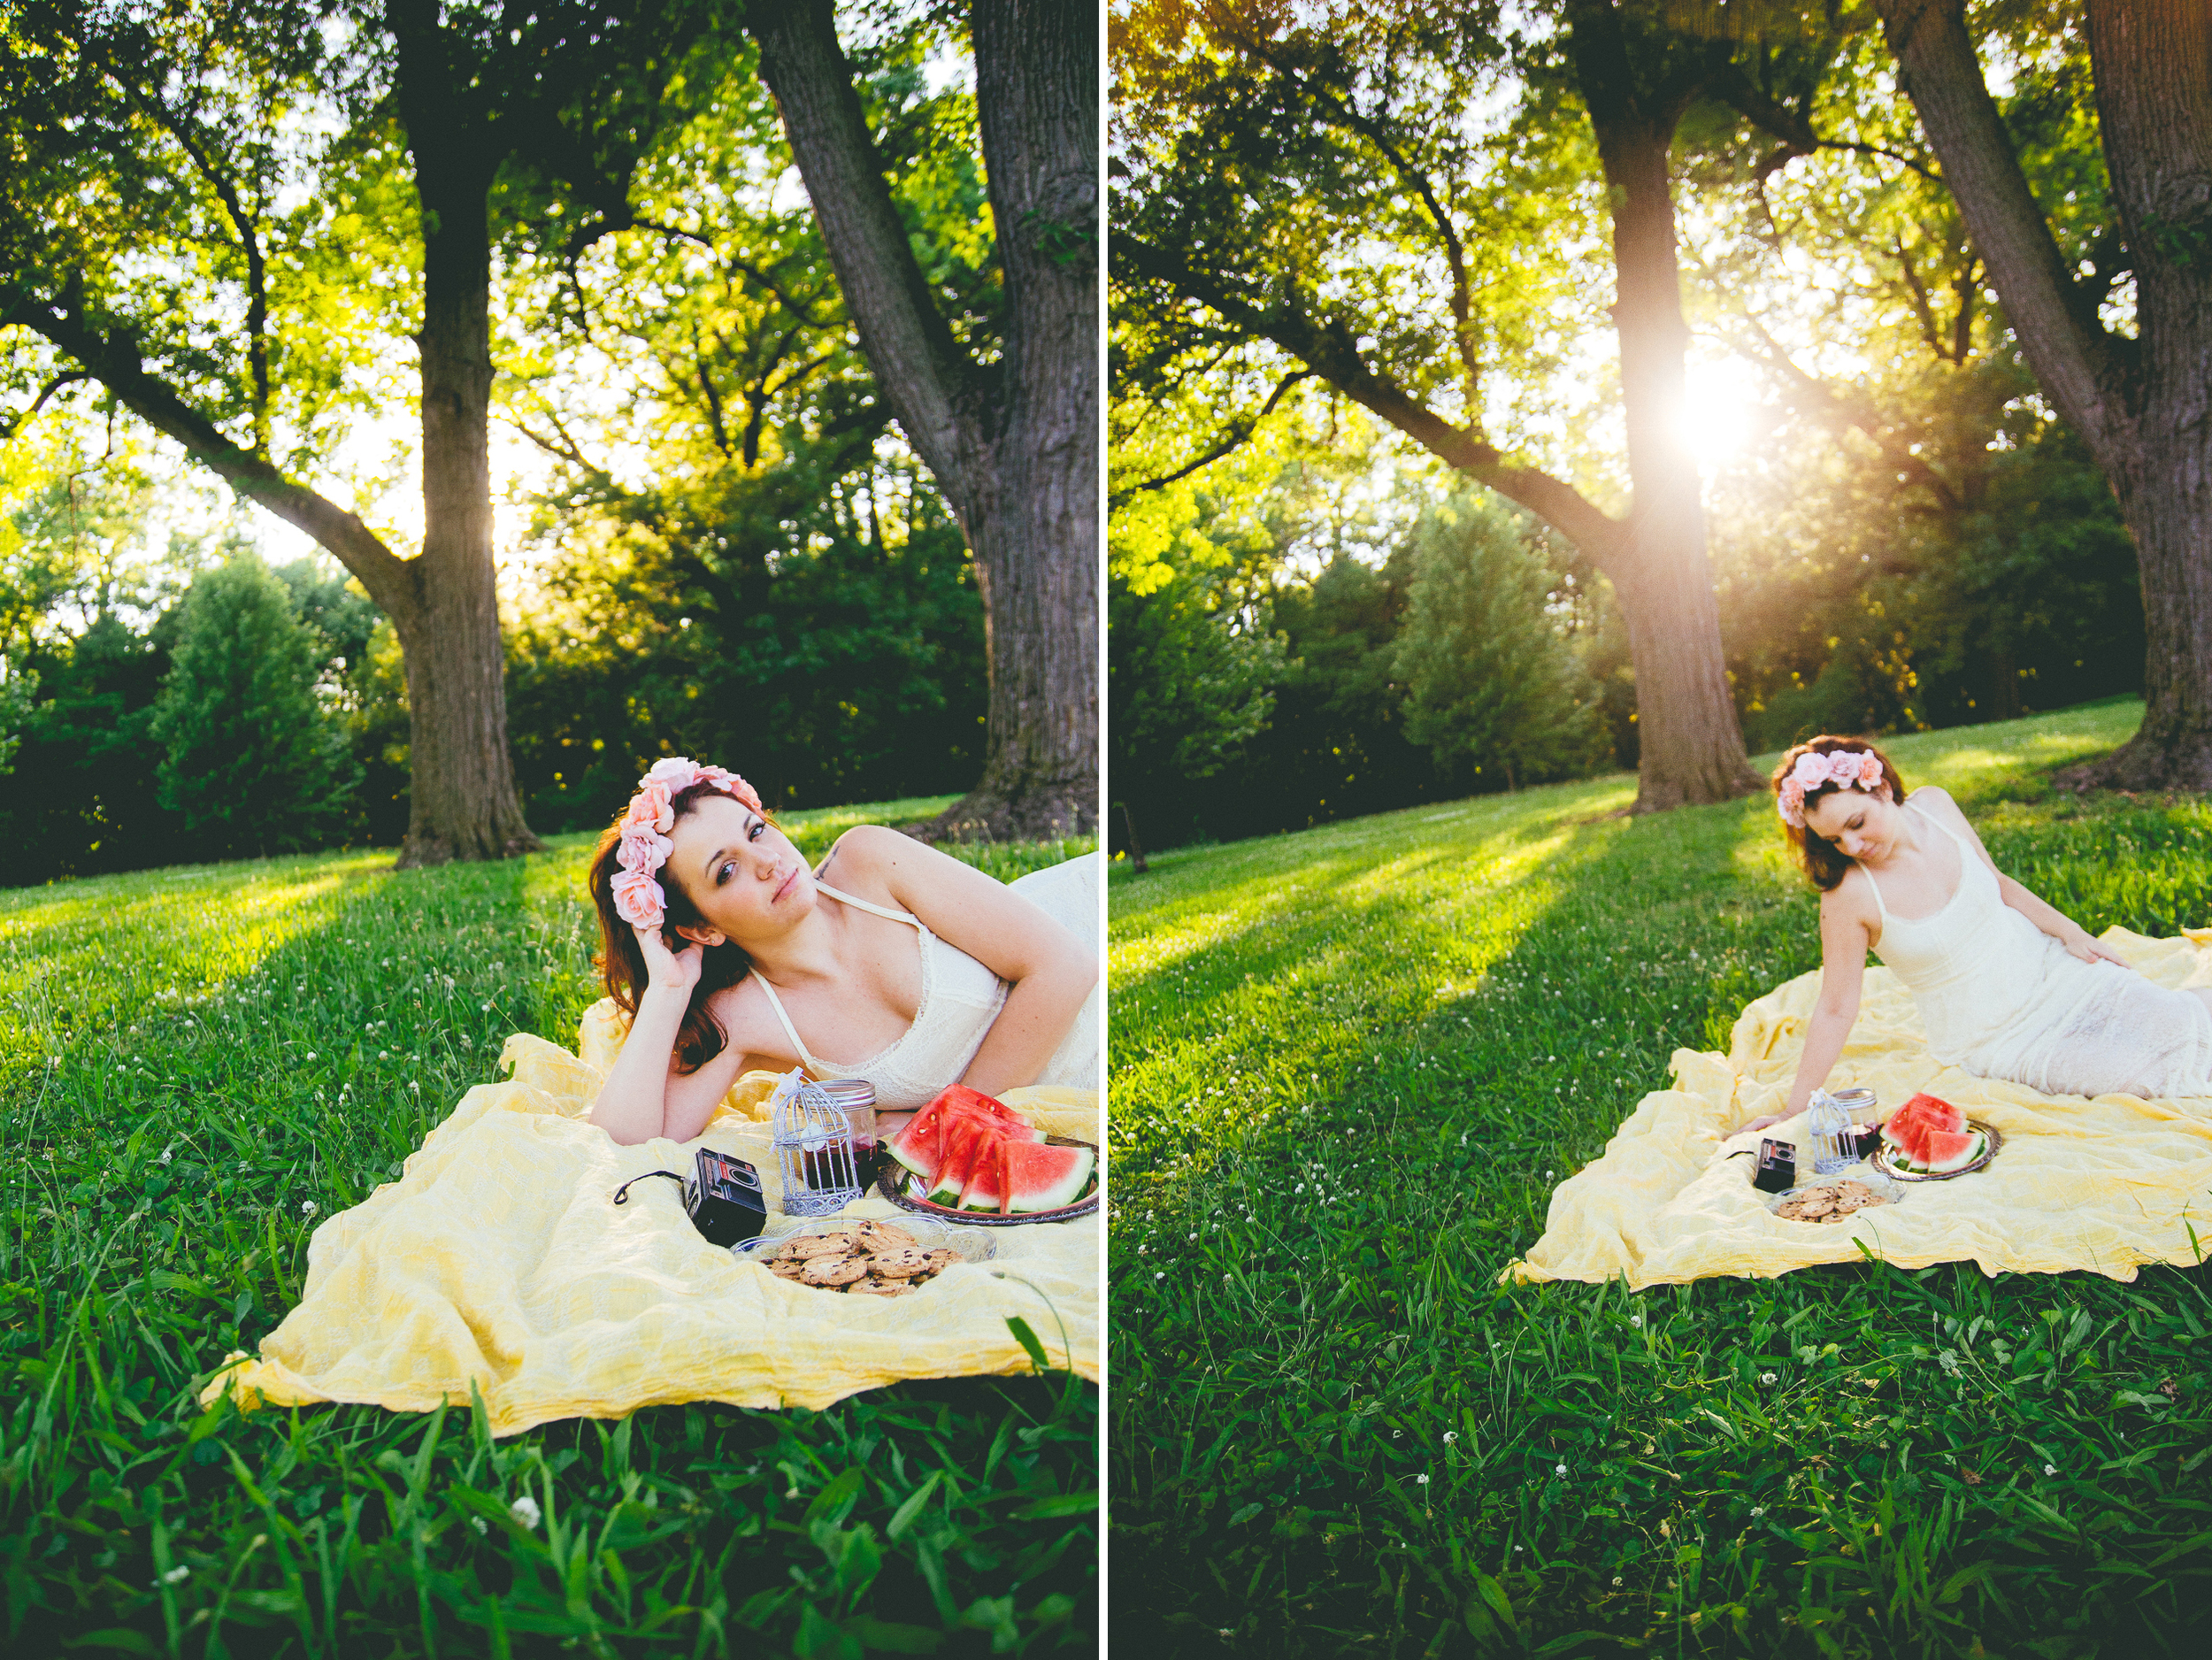 Indianapolis senior photographer Ashlee Lauren takes boho chic photographs on a sunny summer afternoon at this outdoor session of a bohemian girl. Lots of lace, sunshine, flower crowns, mason jars, watermelon, chocolate chip cookies, and girly fun included. Ashlee books sessions for families, children, teens, models, and high school seniors in Indianapolis Indiana, Fishers Indiana, Carmel Indiana, Fort Wayne Indiana. She provides family photography, baby photographs, senior portraits, model test shoots and model head shots. Her photography style is a blend of modern and vintage. She loves her camera and loves shooting at beautiful outdoor locations. She has lots of photography ideas for families, and ideas for senior portraits that are fun and beautiful. Elegant lifestlye photography and styled portrait sessions are Ashlee Lauren's specialties.